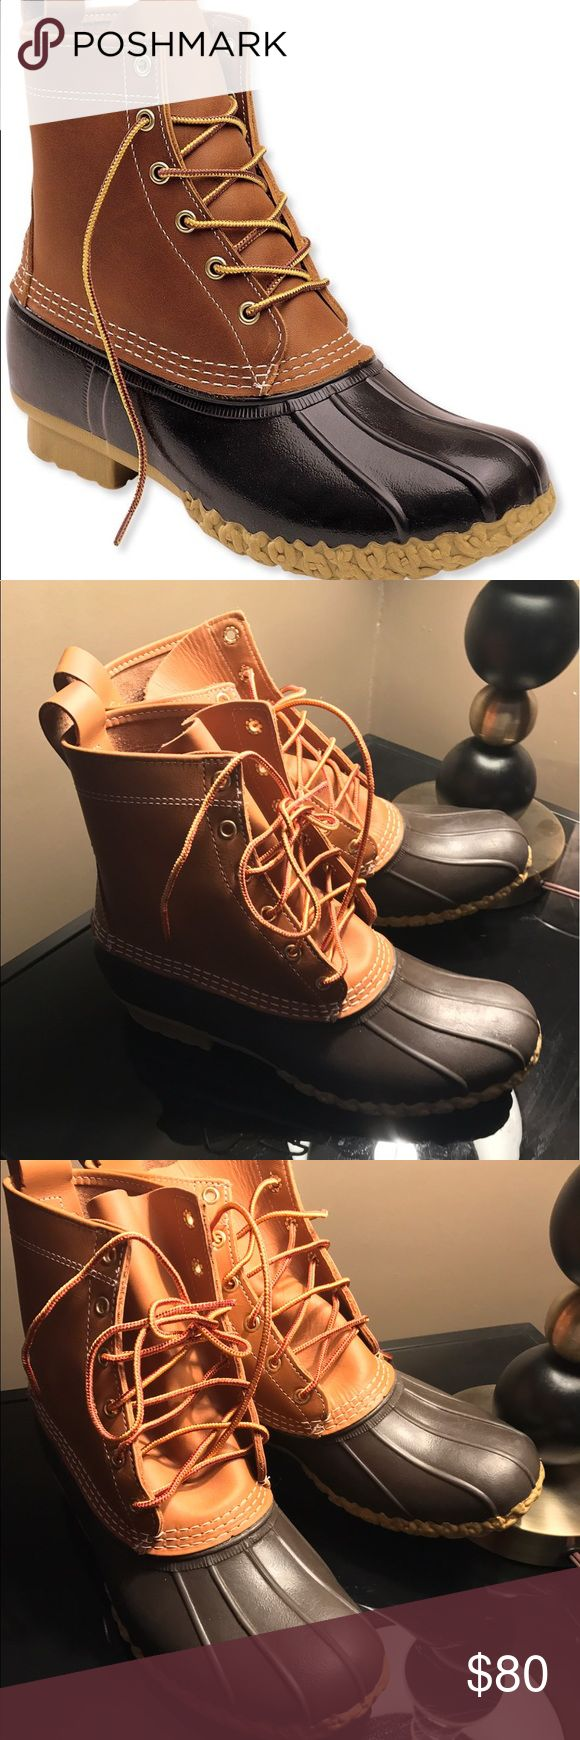 L L bean bean boots men size 10 New without box These shoes are new, the only wear shown is just from trying them on a few times but never wearing them outdoors these retail $120 L.L. Bean Shoes Boots